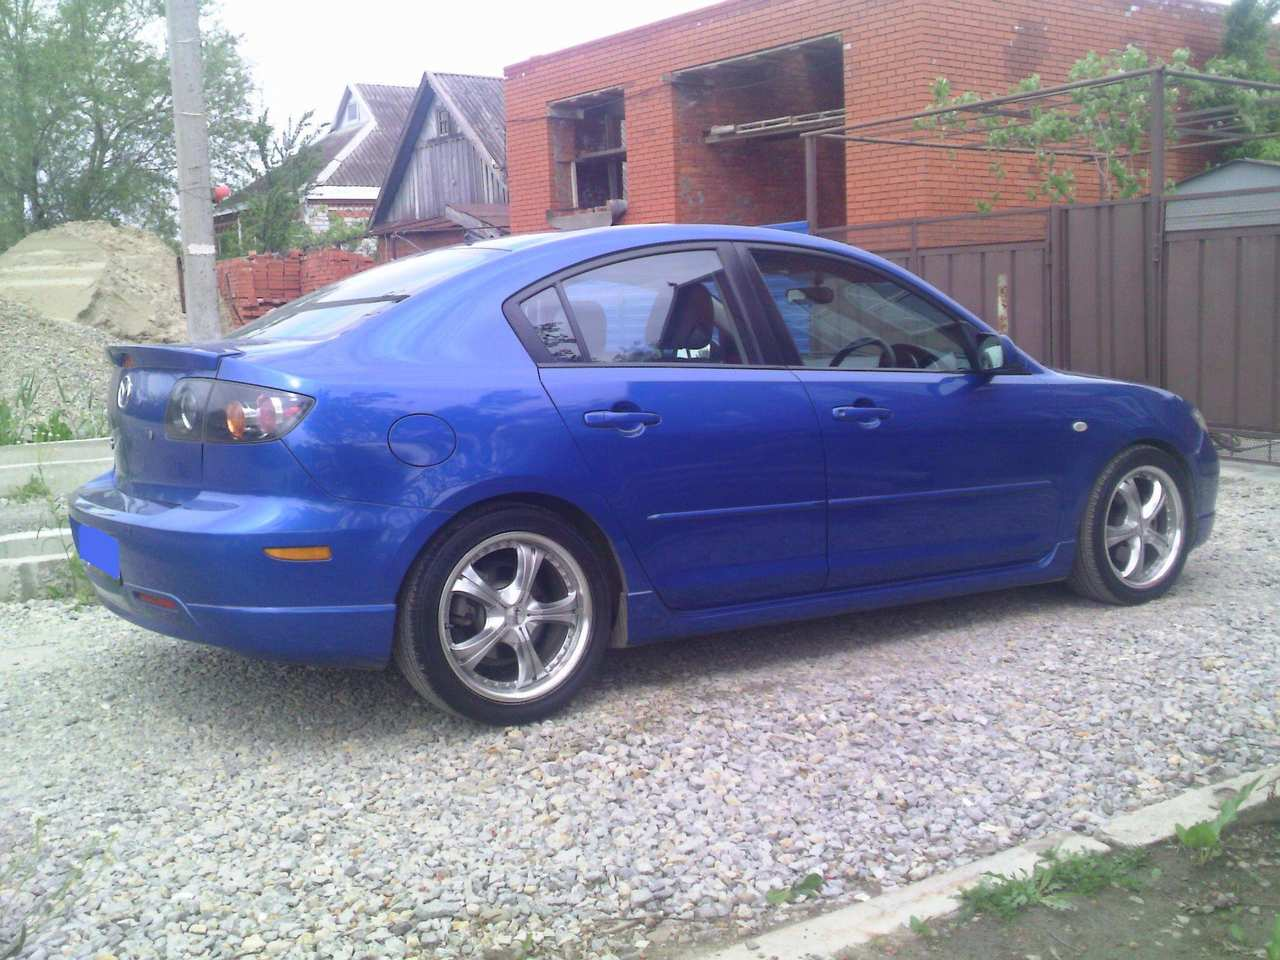 2003 mazda mazda3 wallpapers, 1.6l., gasoline, ff, automatic for